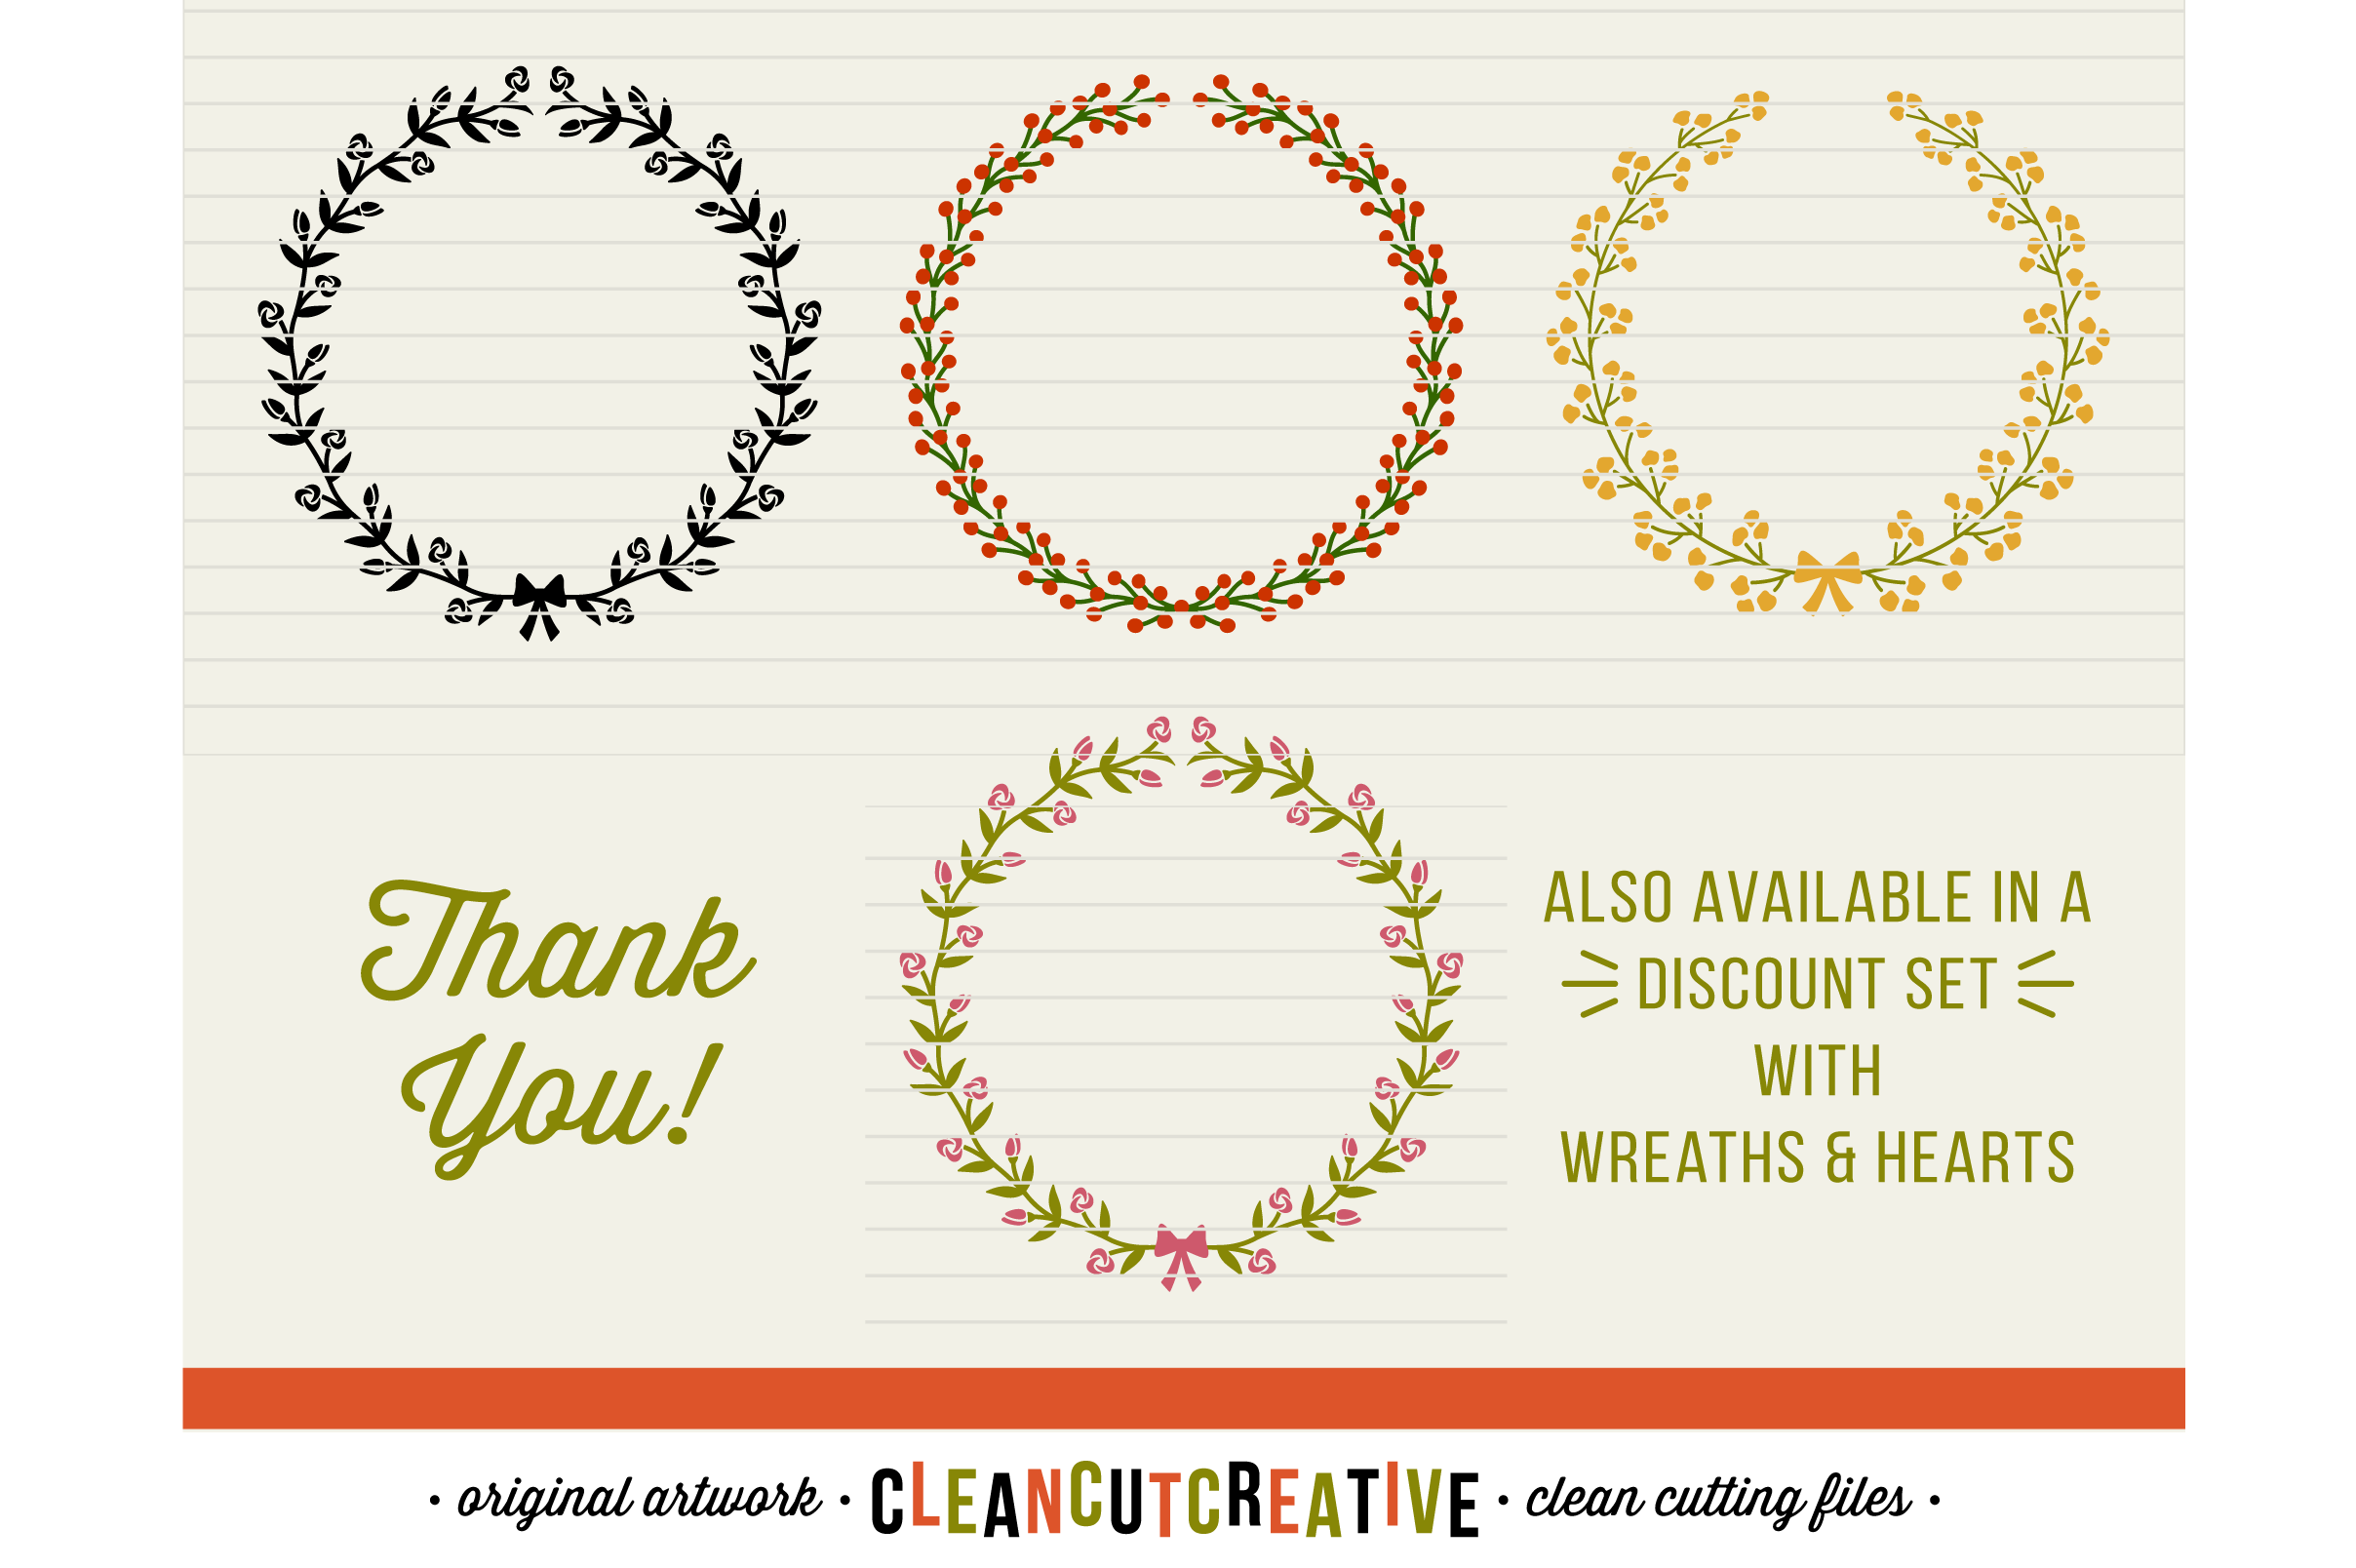 FLORAL MEGA BUNDLE 30 wreaths, laurels and hearts leaf frames - SVG DXF EPS PNG - for Cricut and Silhouette Cameo - clean cutting digital files example image 6